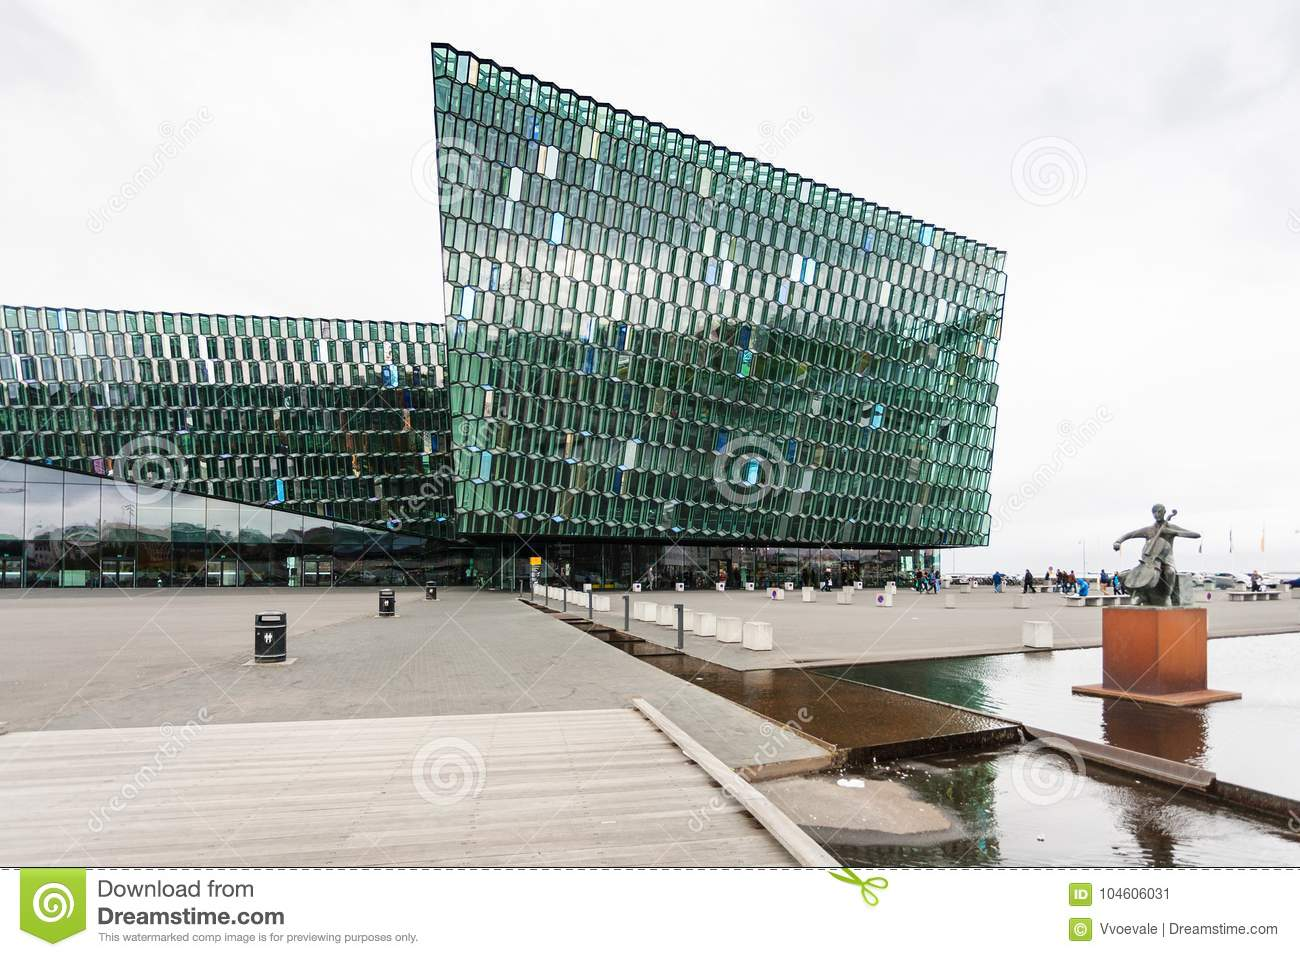 Harpa and cellist statue in Reykjavik city